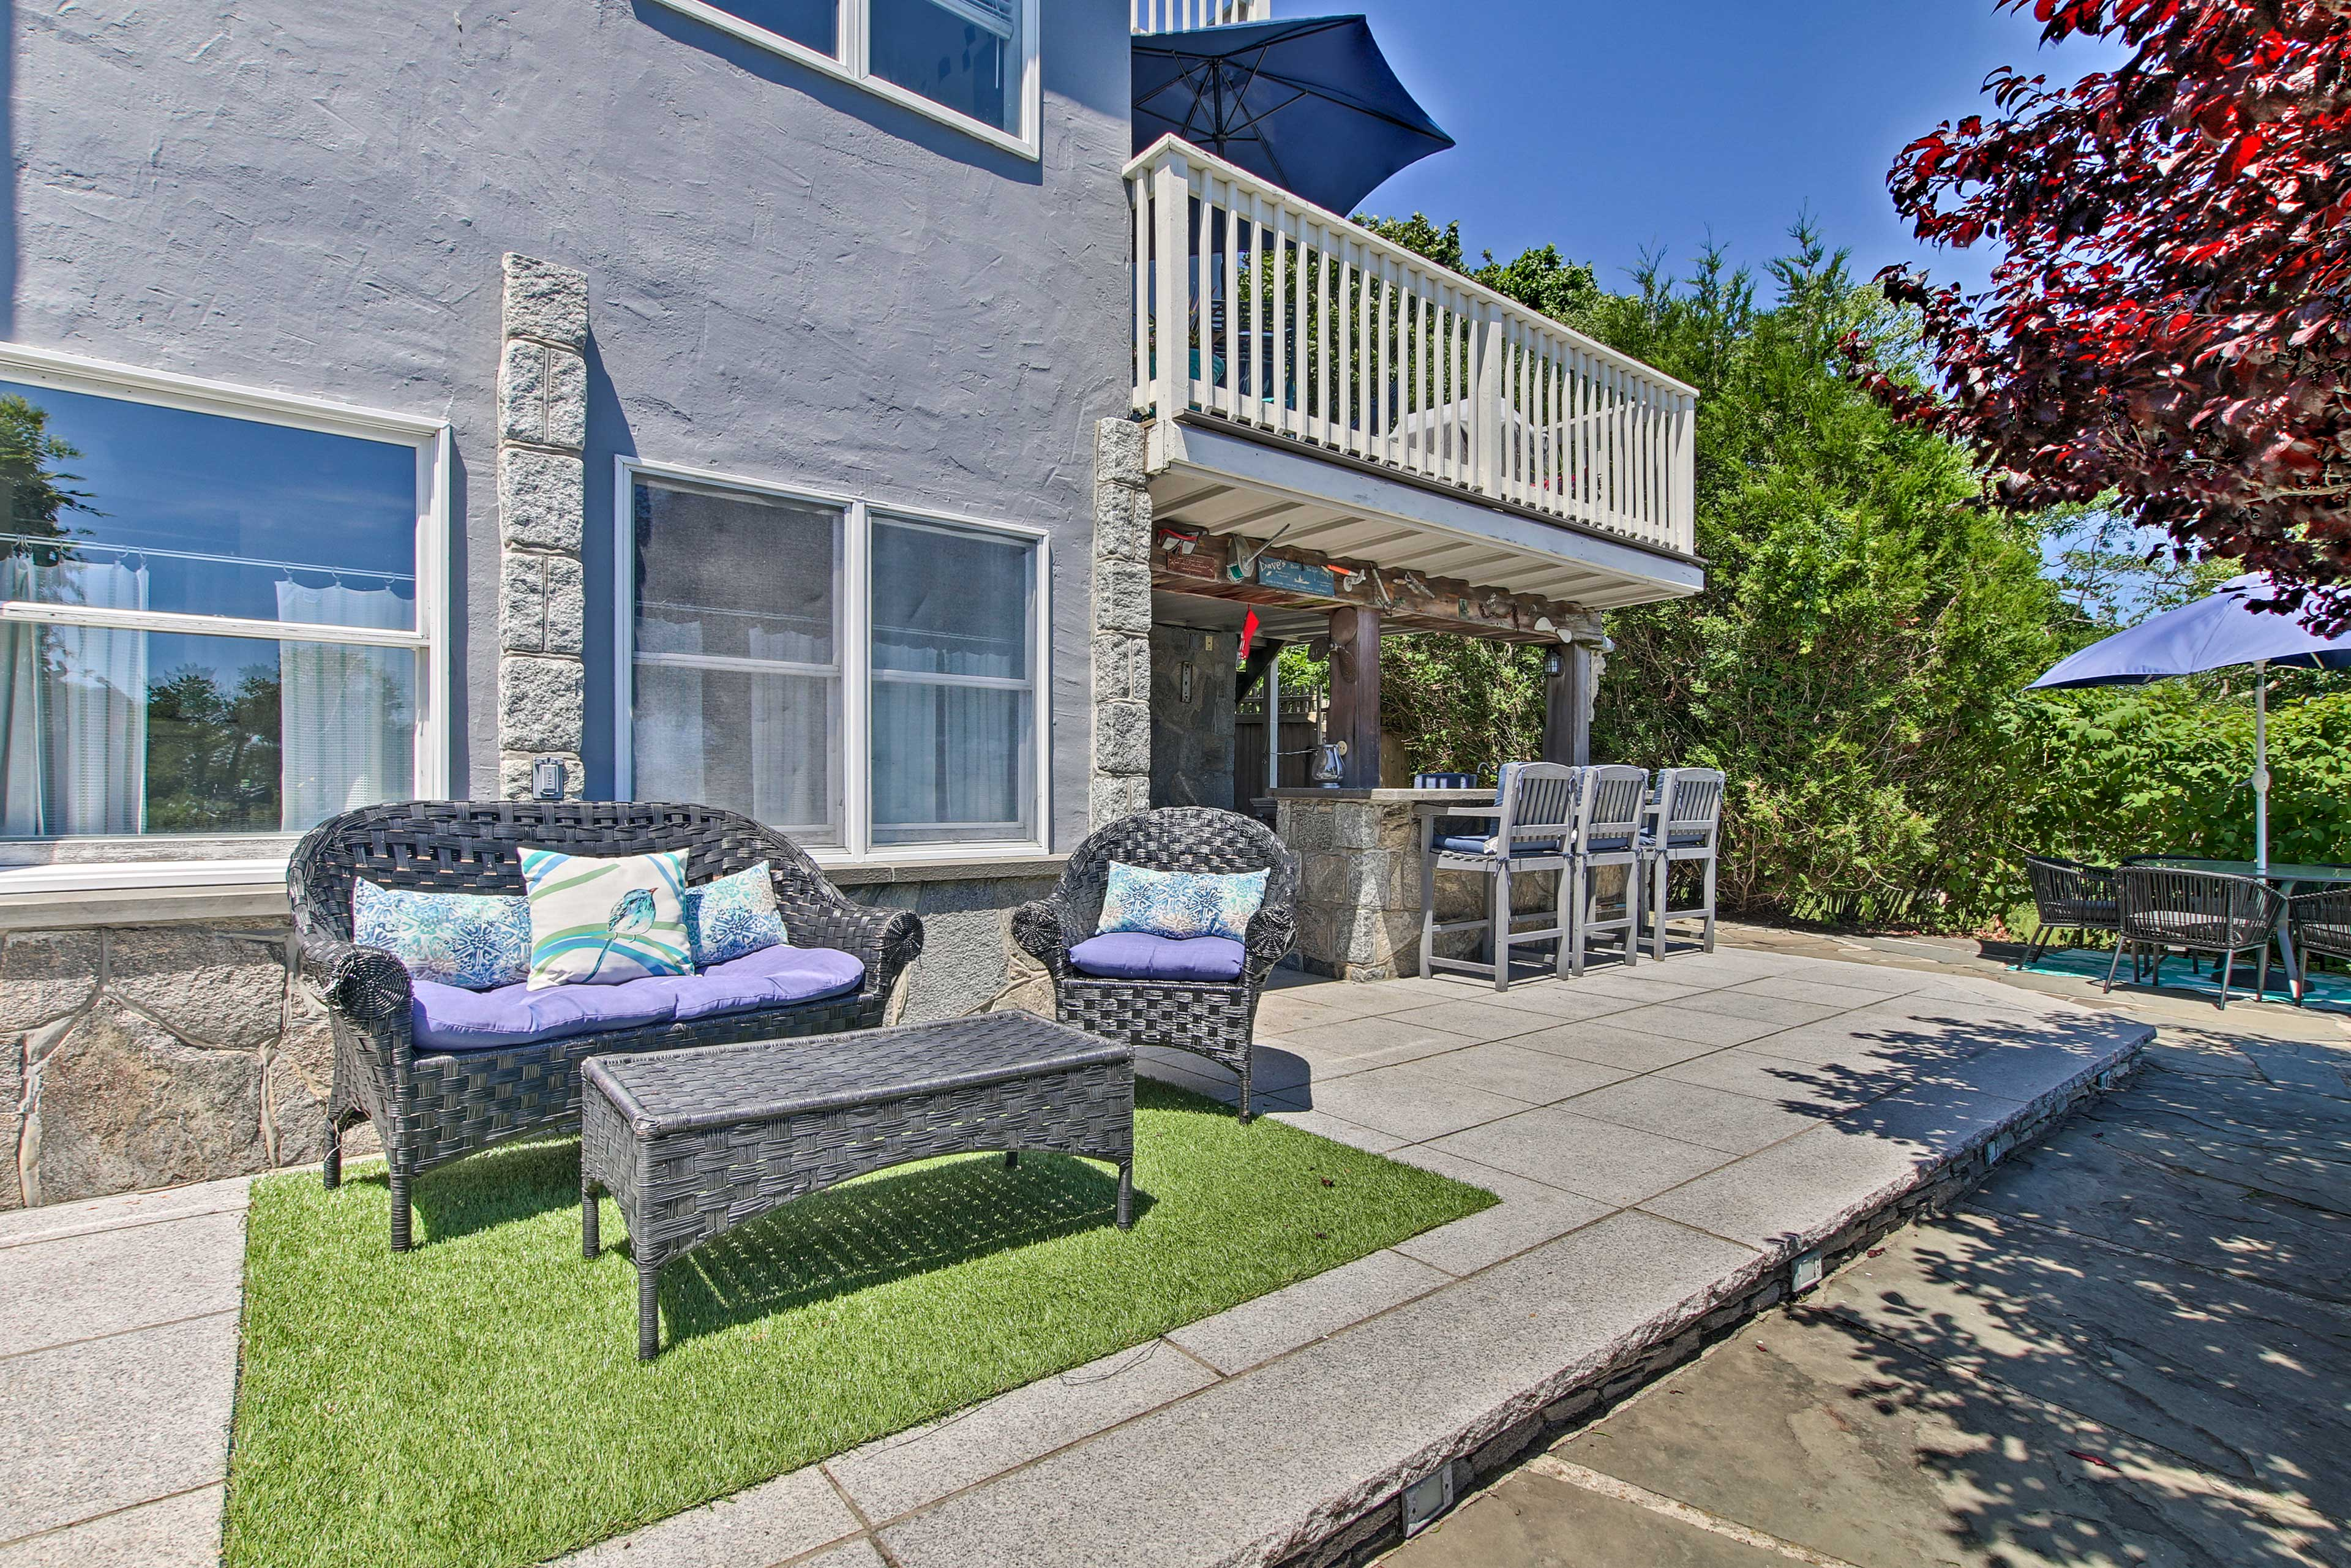 Bring cocktails and appetizers to this patio.